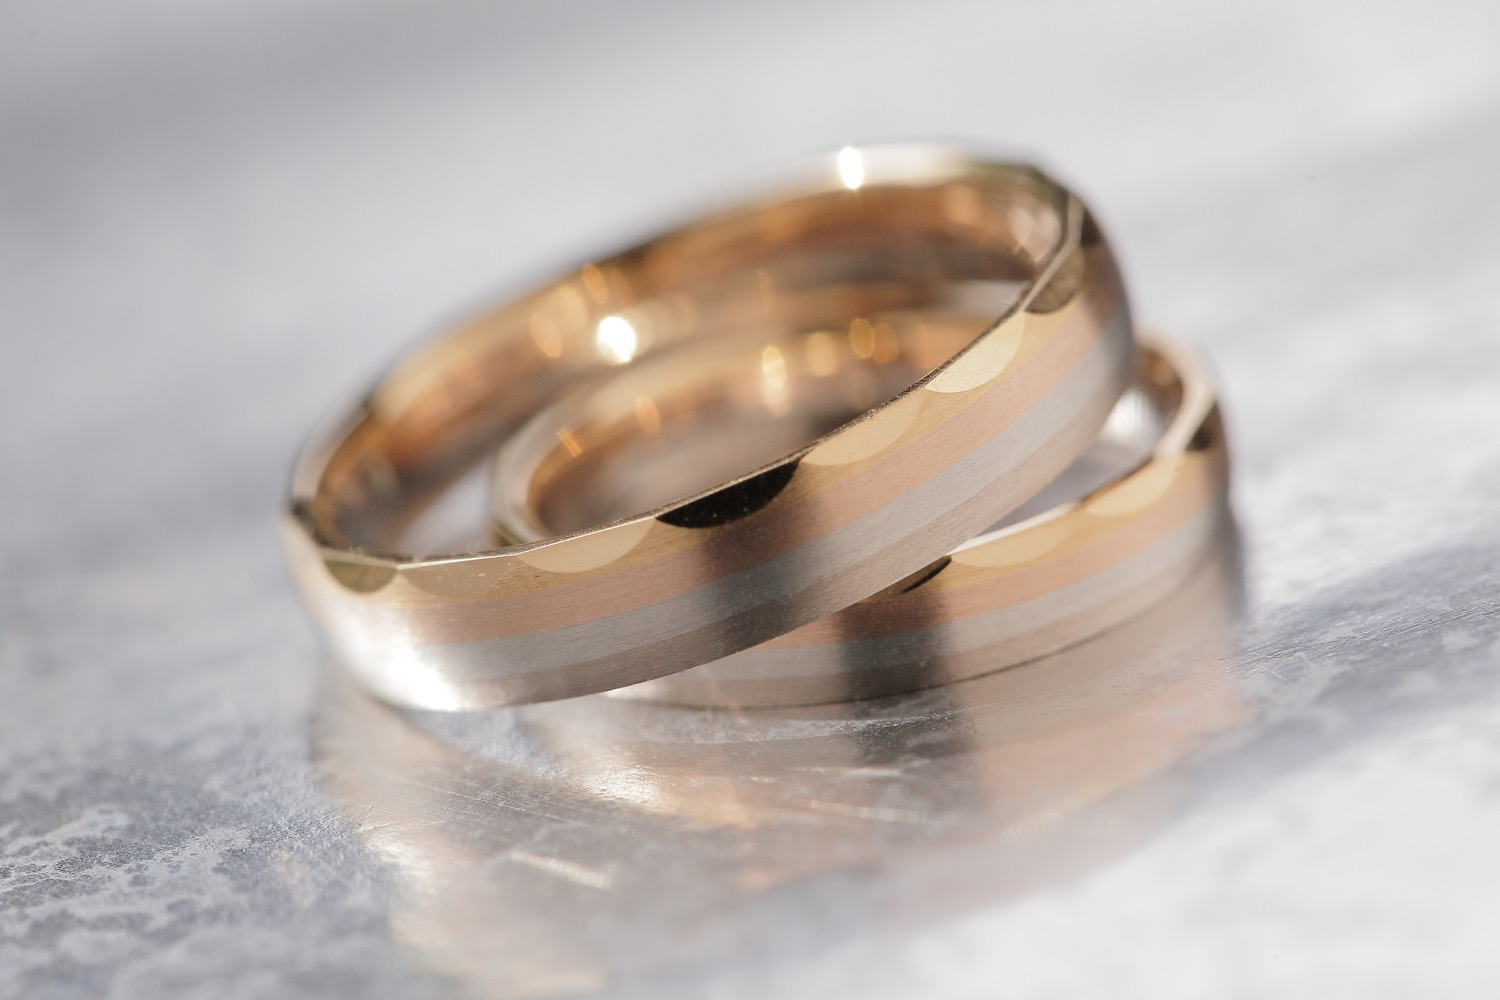 Closed-up Pre-Wedding Ring Shot